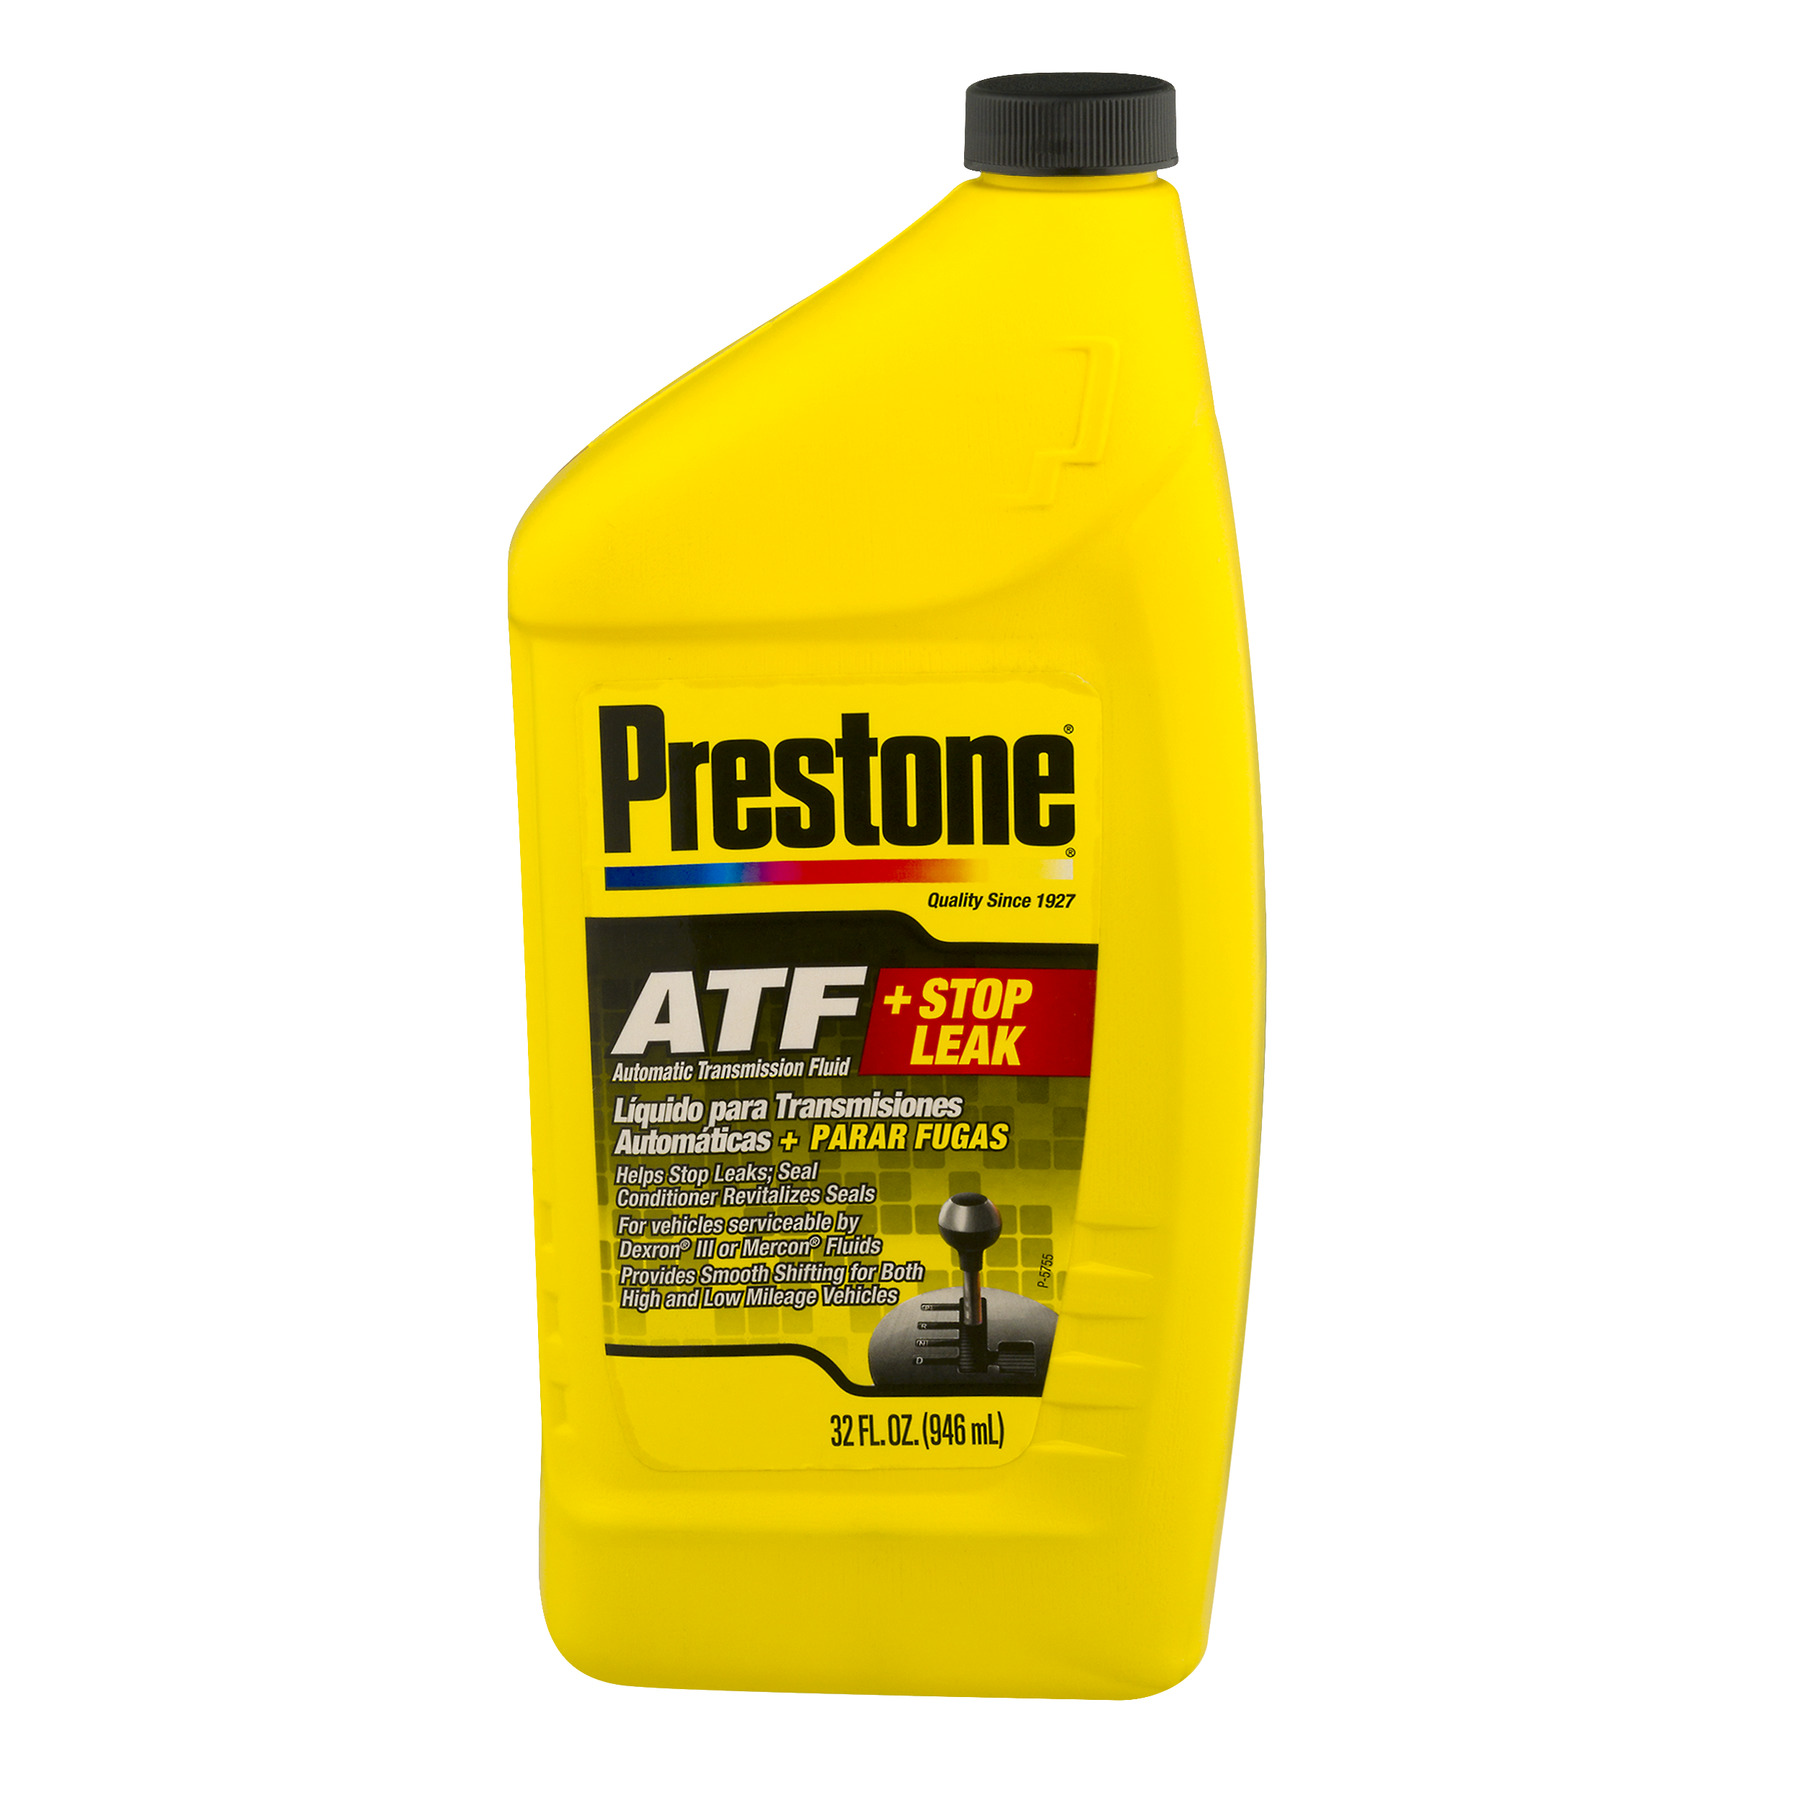 Prestone ATF + Stop Leak Automatic Transmission Fluid, 32.0 FL OZ